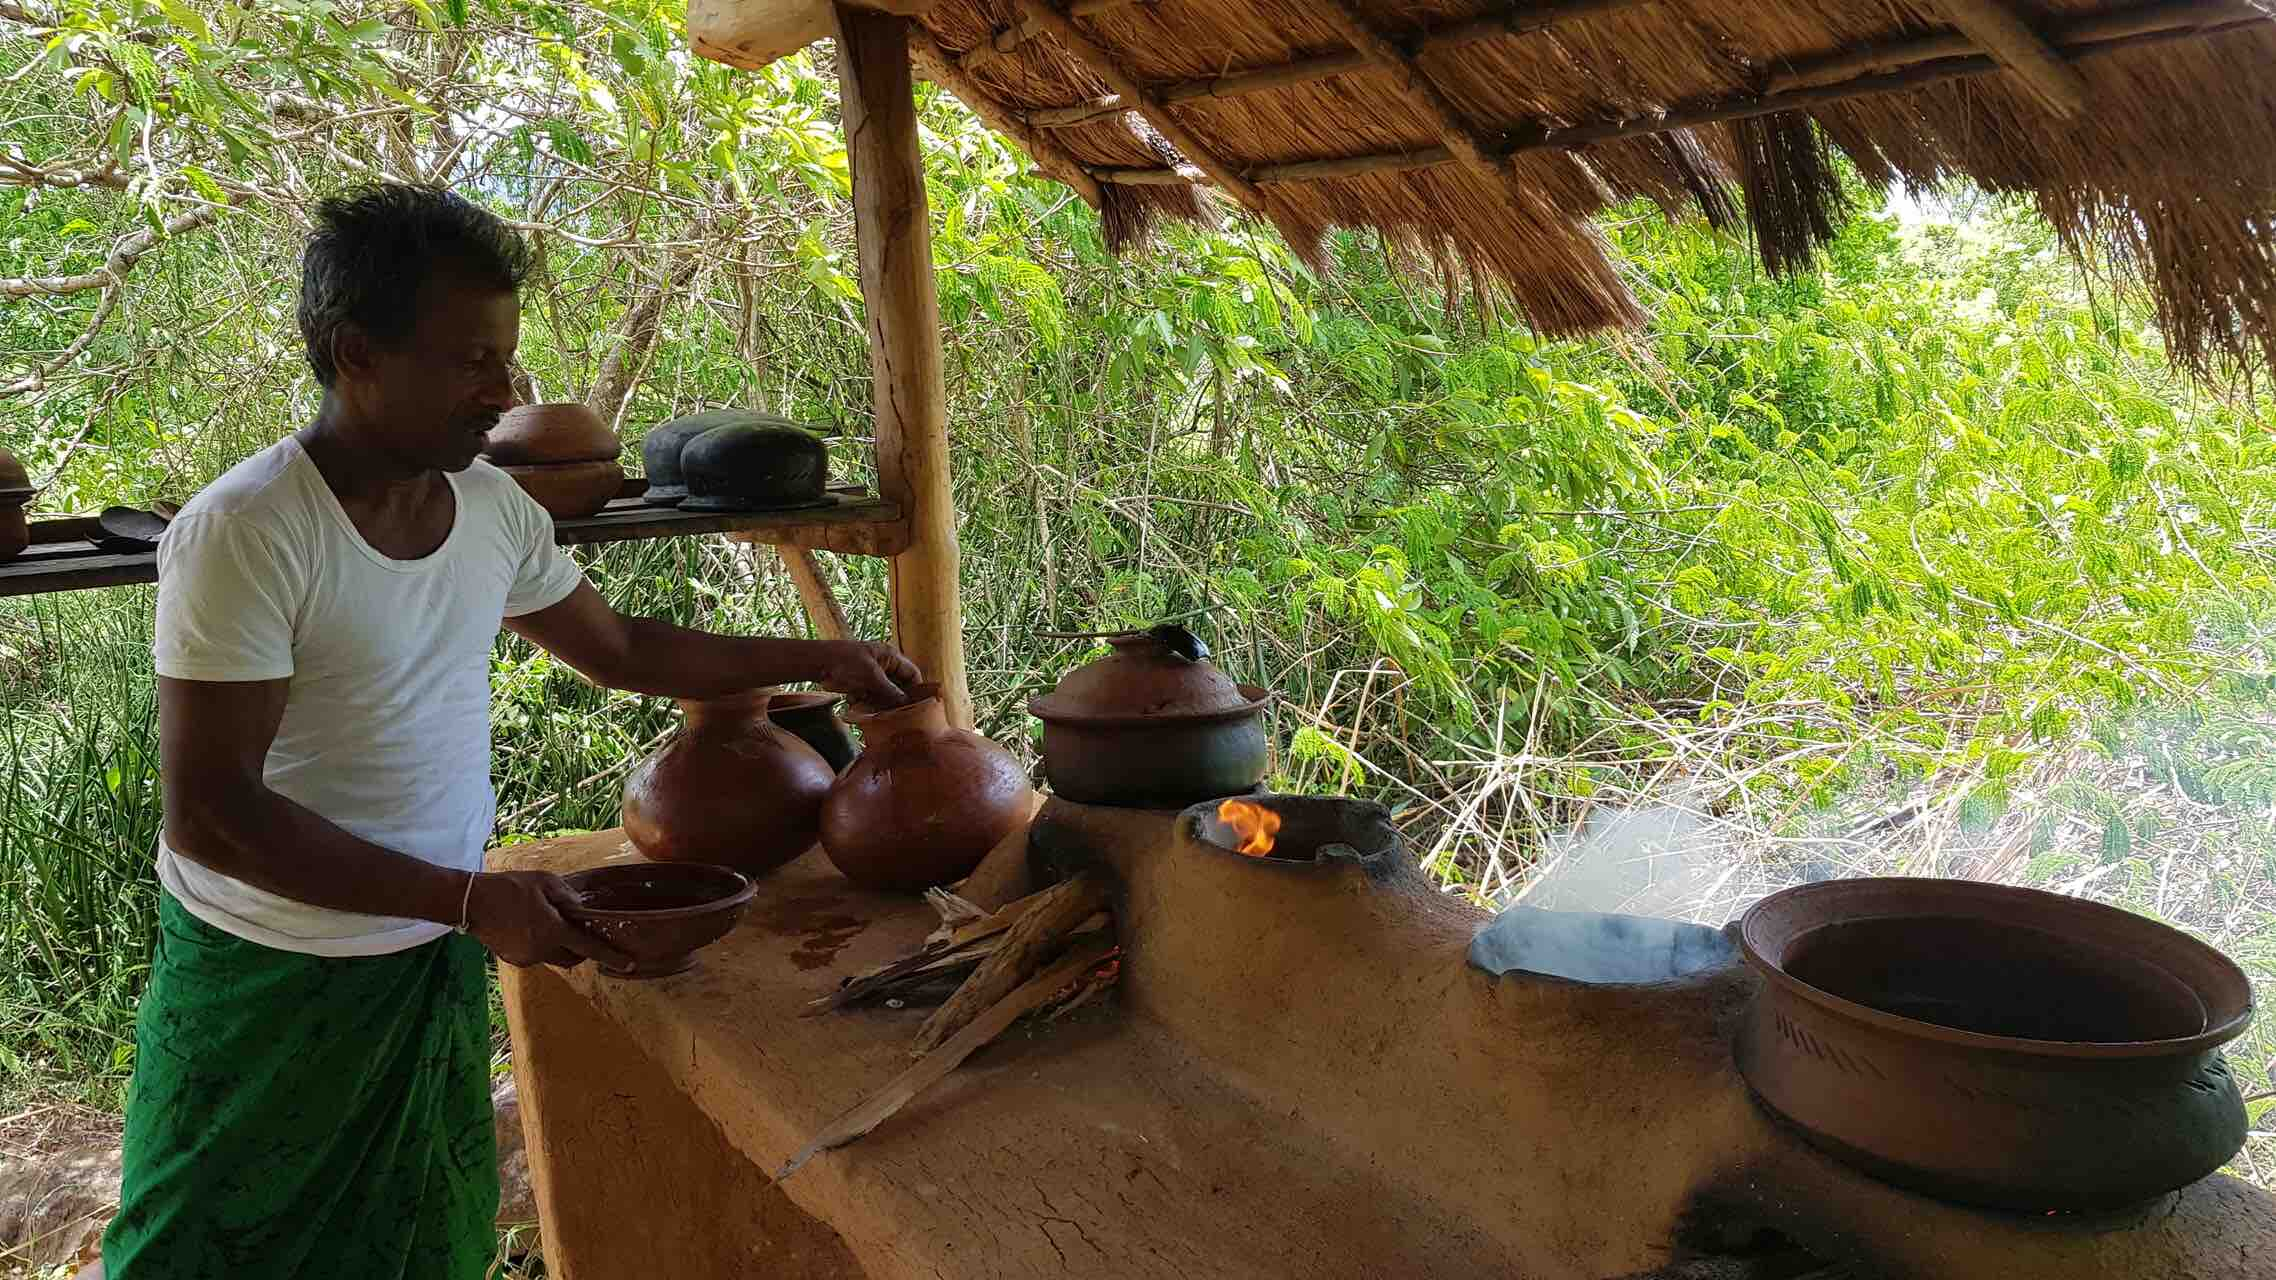 sri-lanka-cooking-traditional-kitchen-holiday-review-feedback-invite-to-paradise-quentin-kate-hulm.jpg